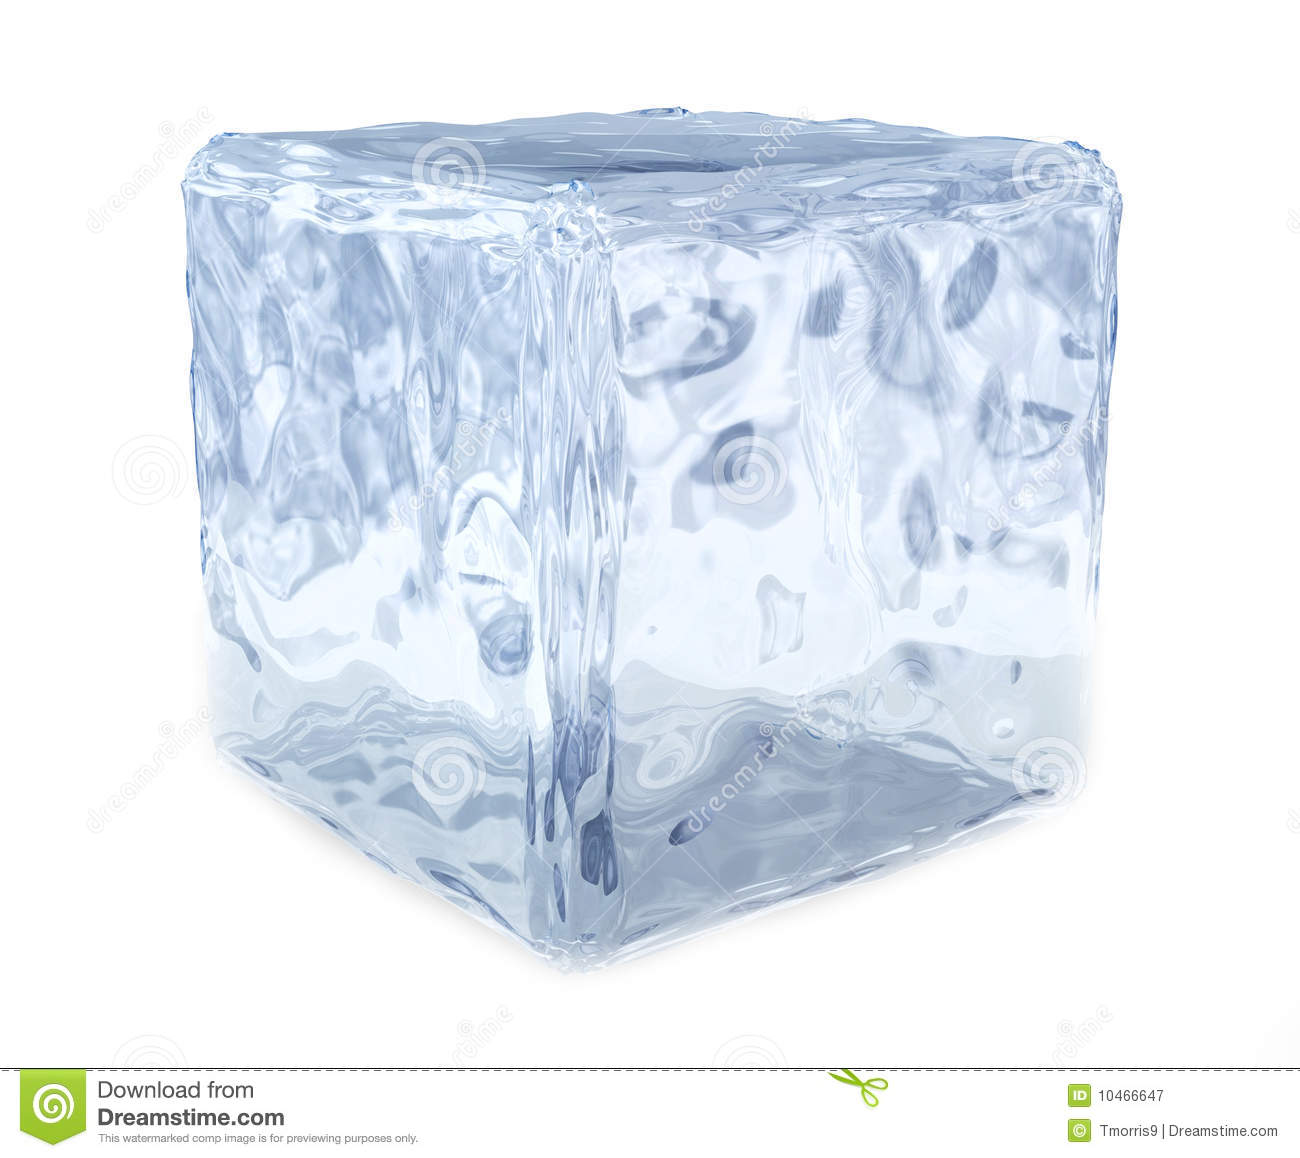 Block of ice clipart vector free library Block of Ice Clip Art – Clipart Free Download vector free library